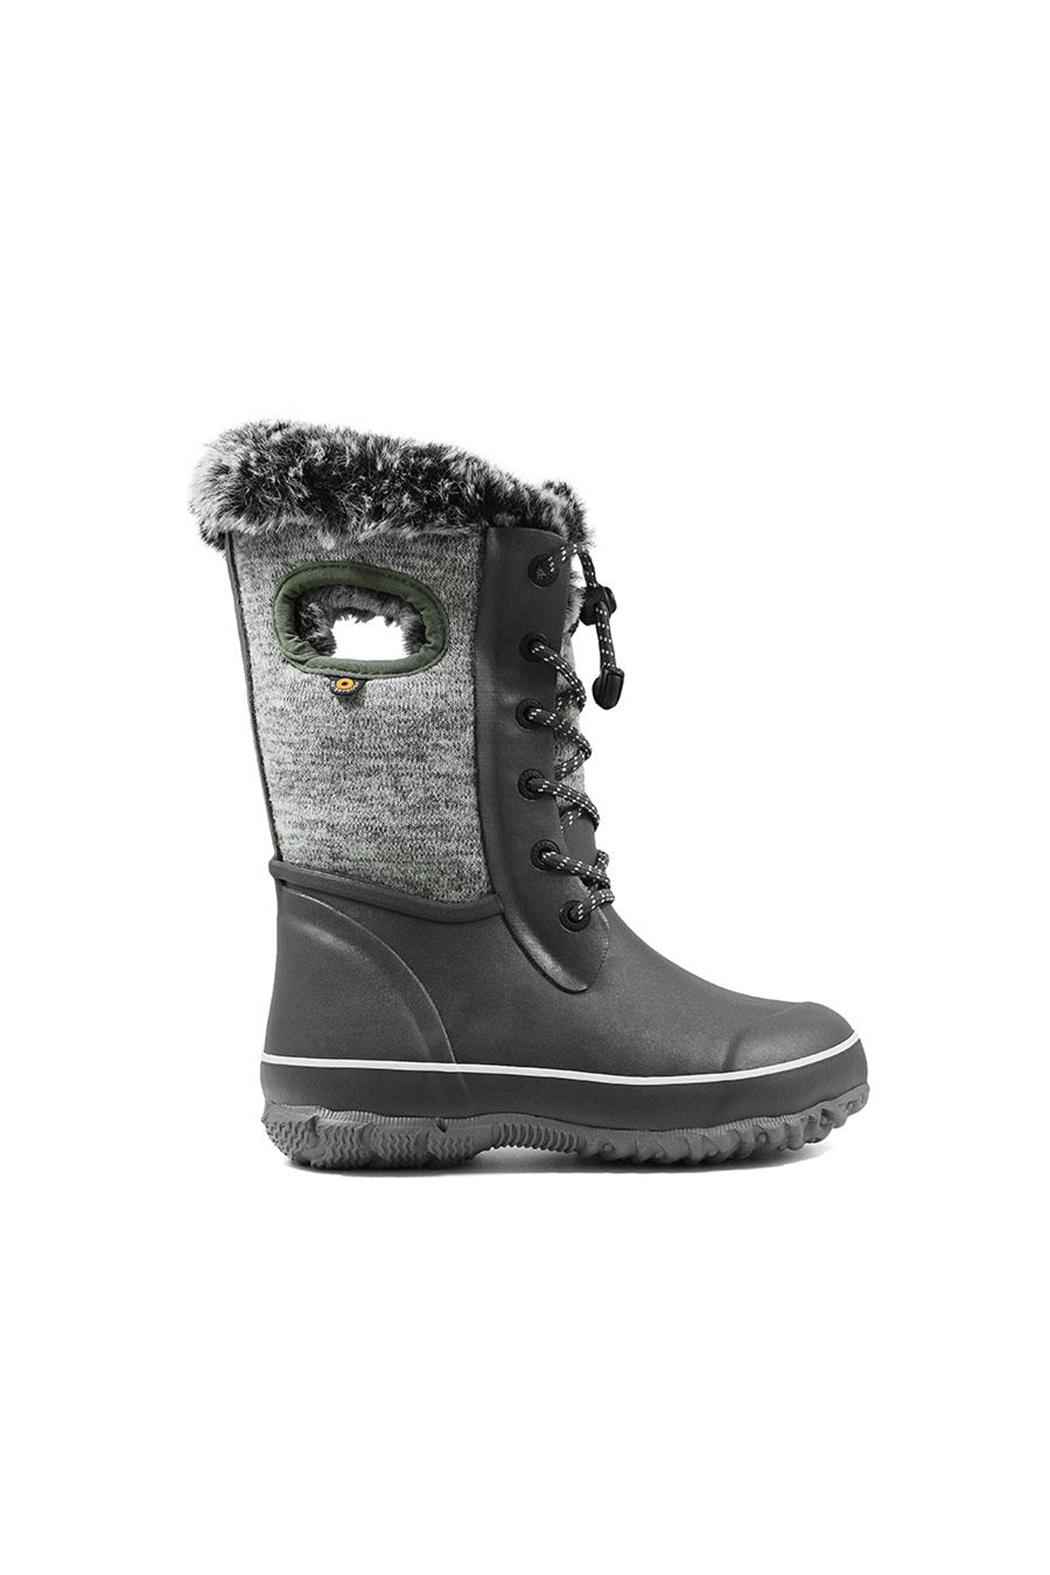 BOGS Arcata Knit Kids Waterproof Boots - Front Cropped Image